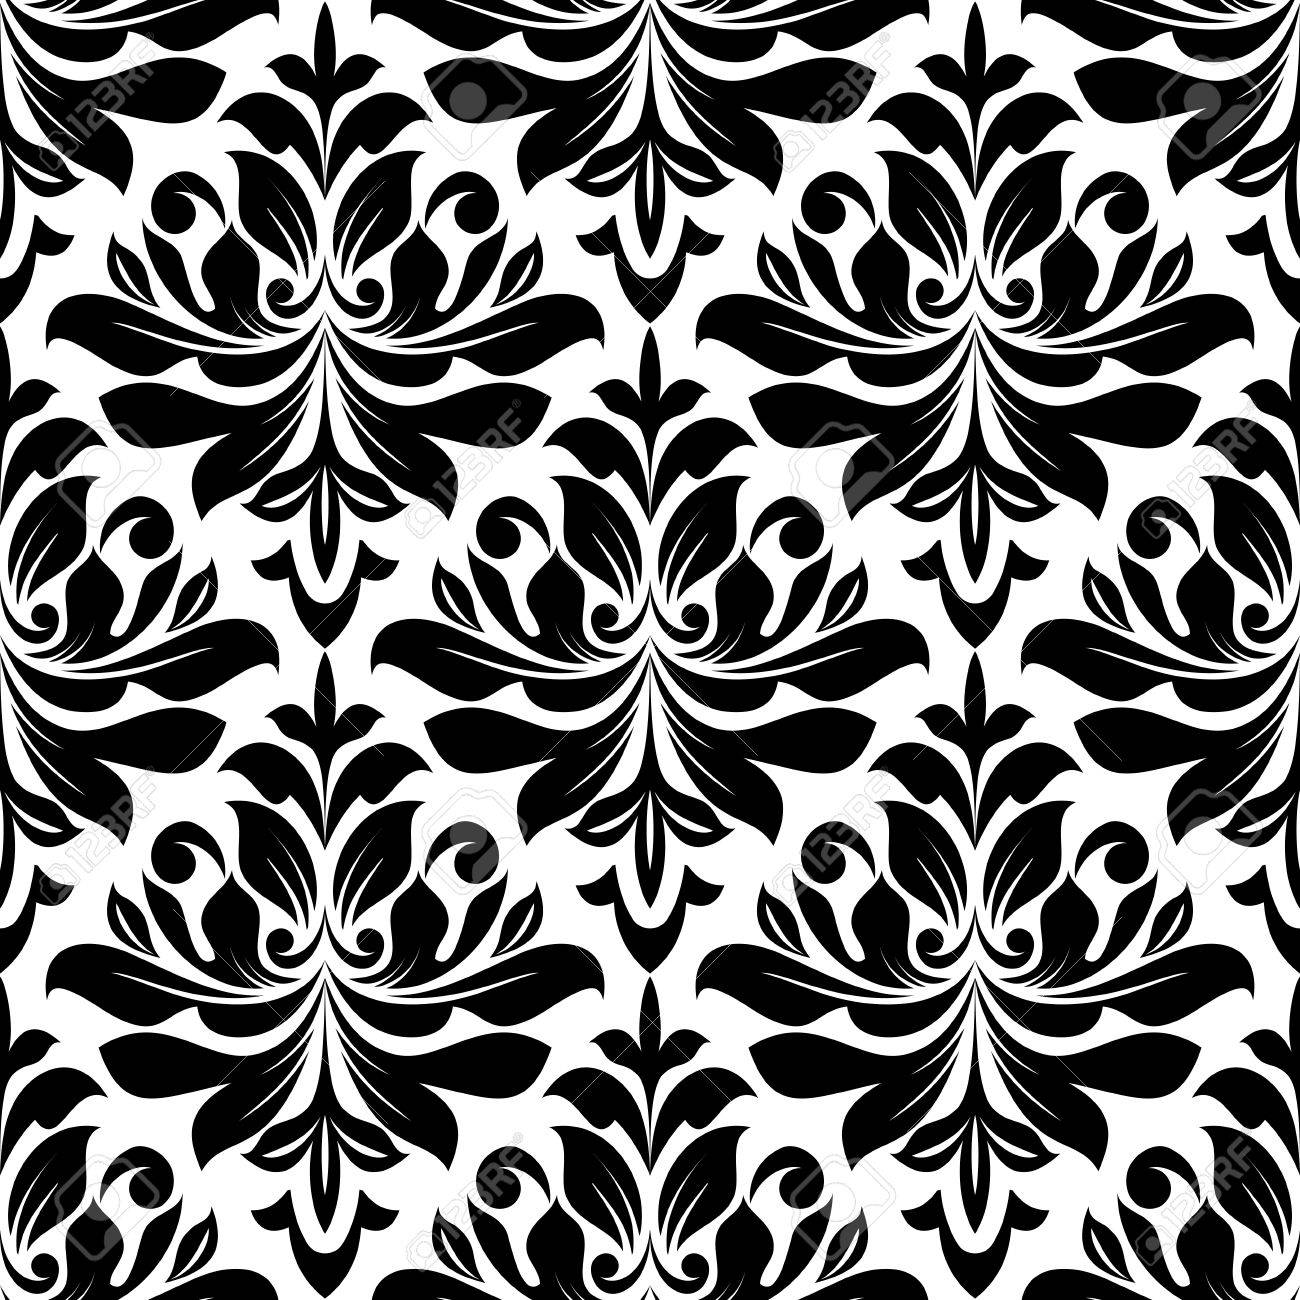 Bold Seamless Arabesque Pattern With A Black Repeat Floral Motif